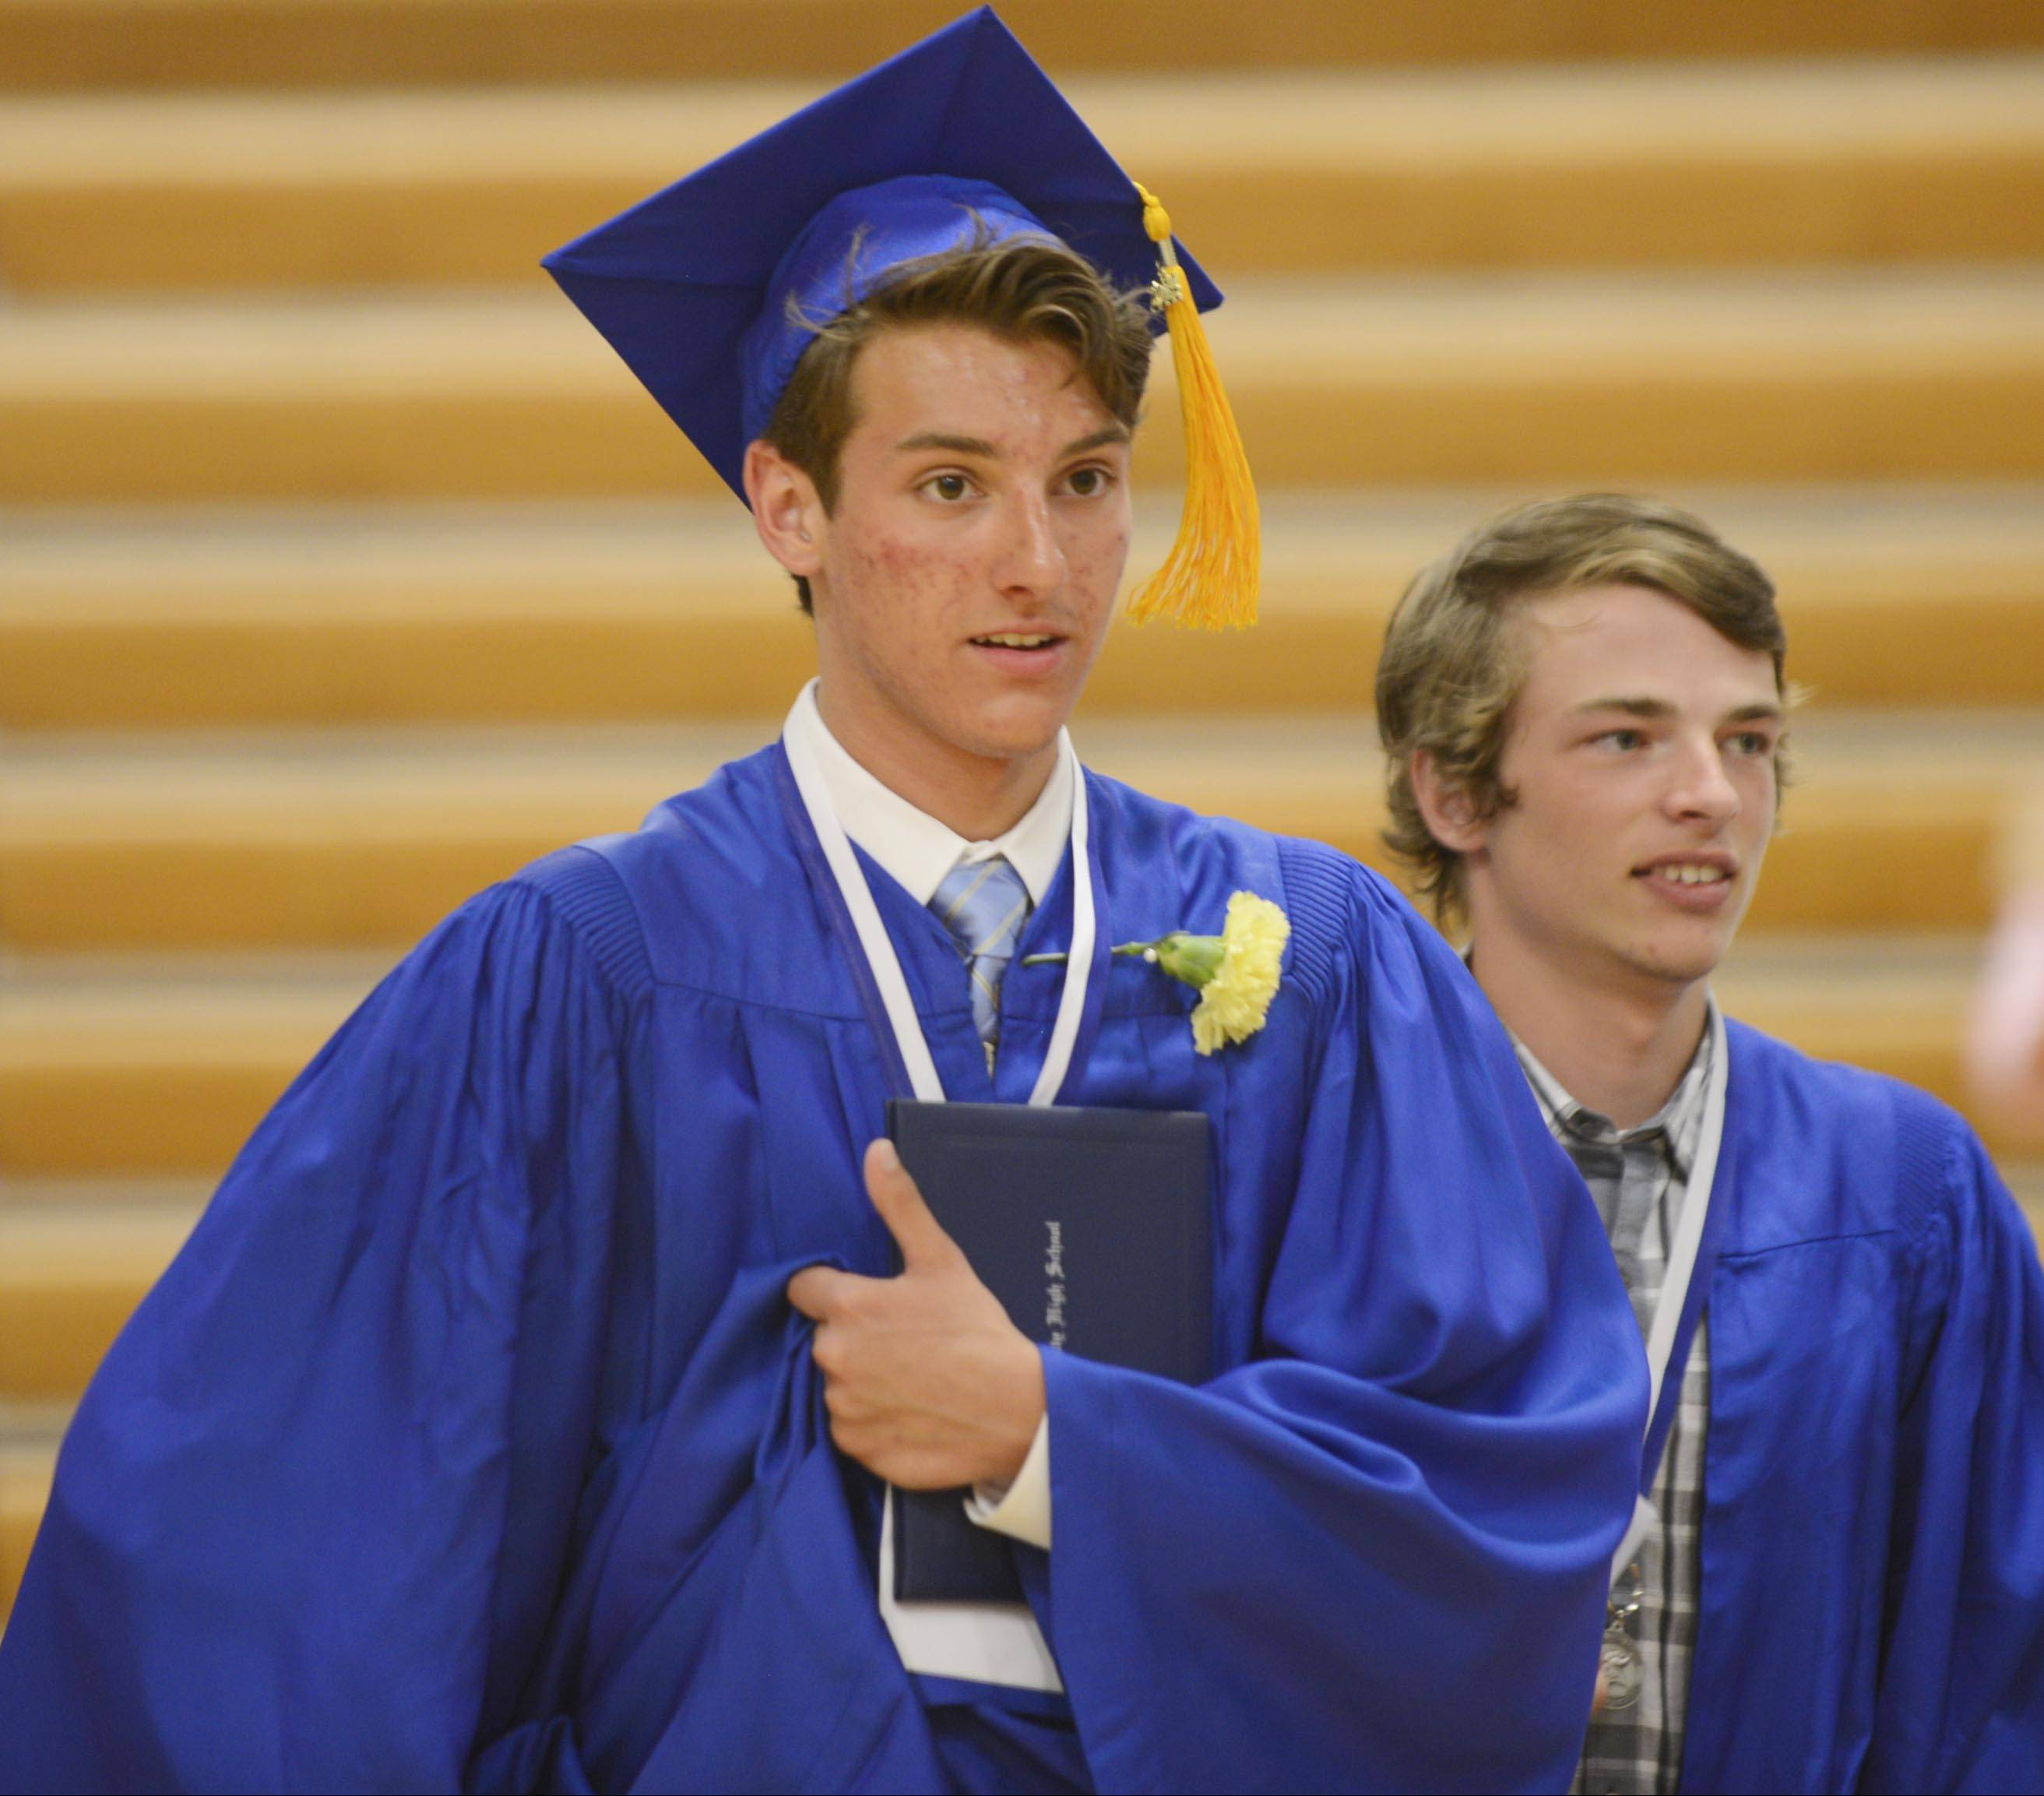 Geneva High School held its graduation Sunday, May 25 in Geneva.